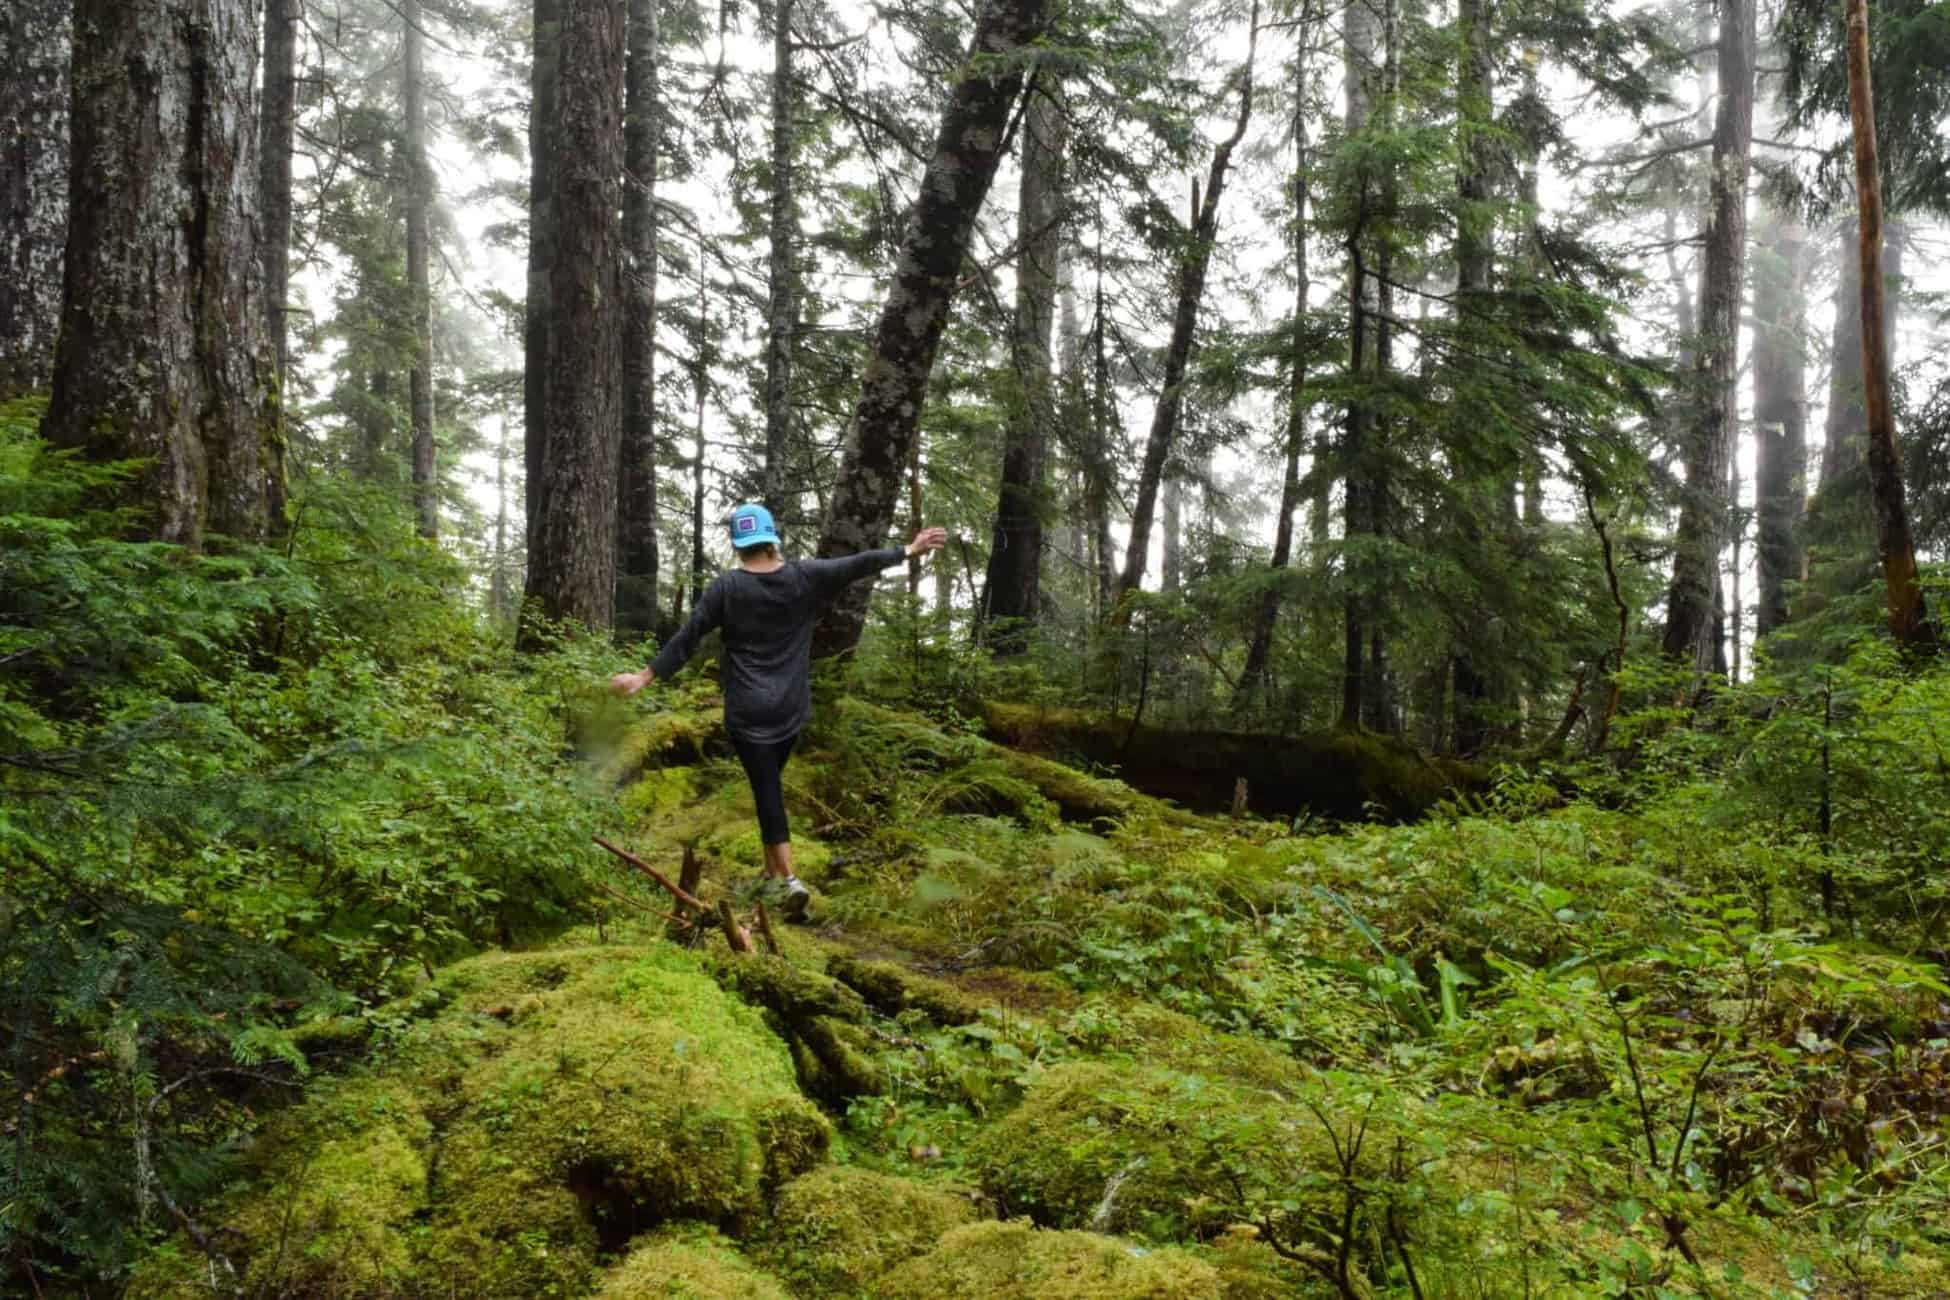 One of the best things to do in Prince Rupert is to go hiking along the many trails. Here Erin is hiking on the Kiwanis Trail.